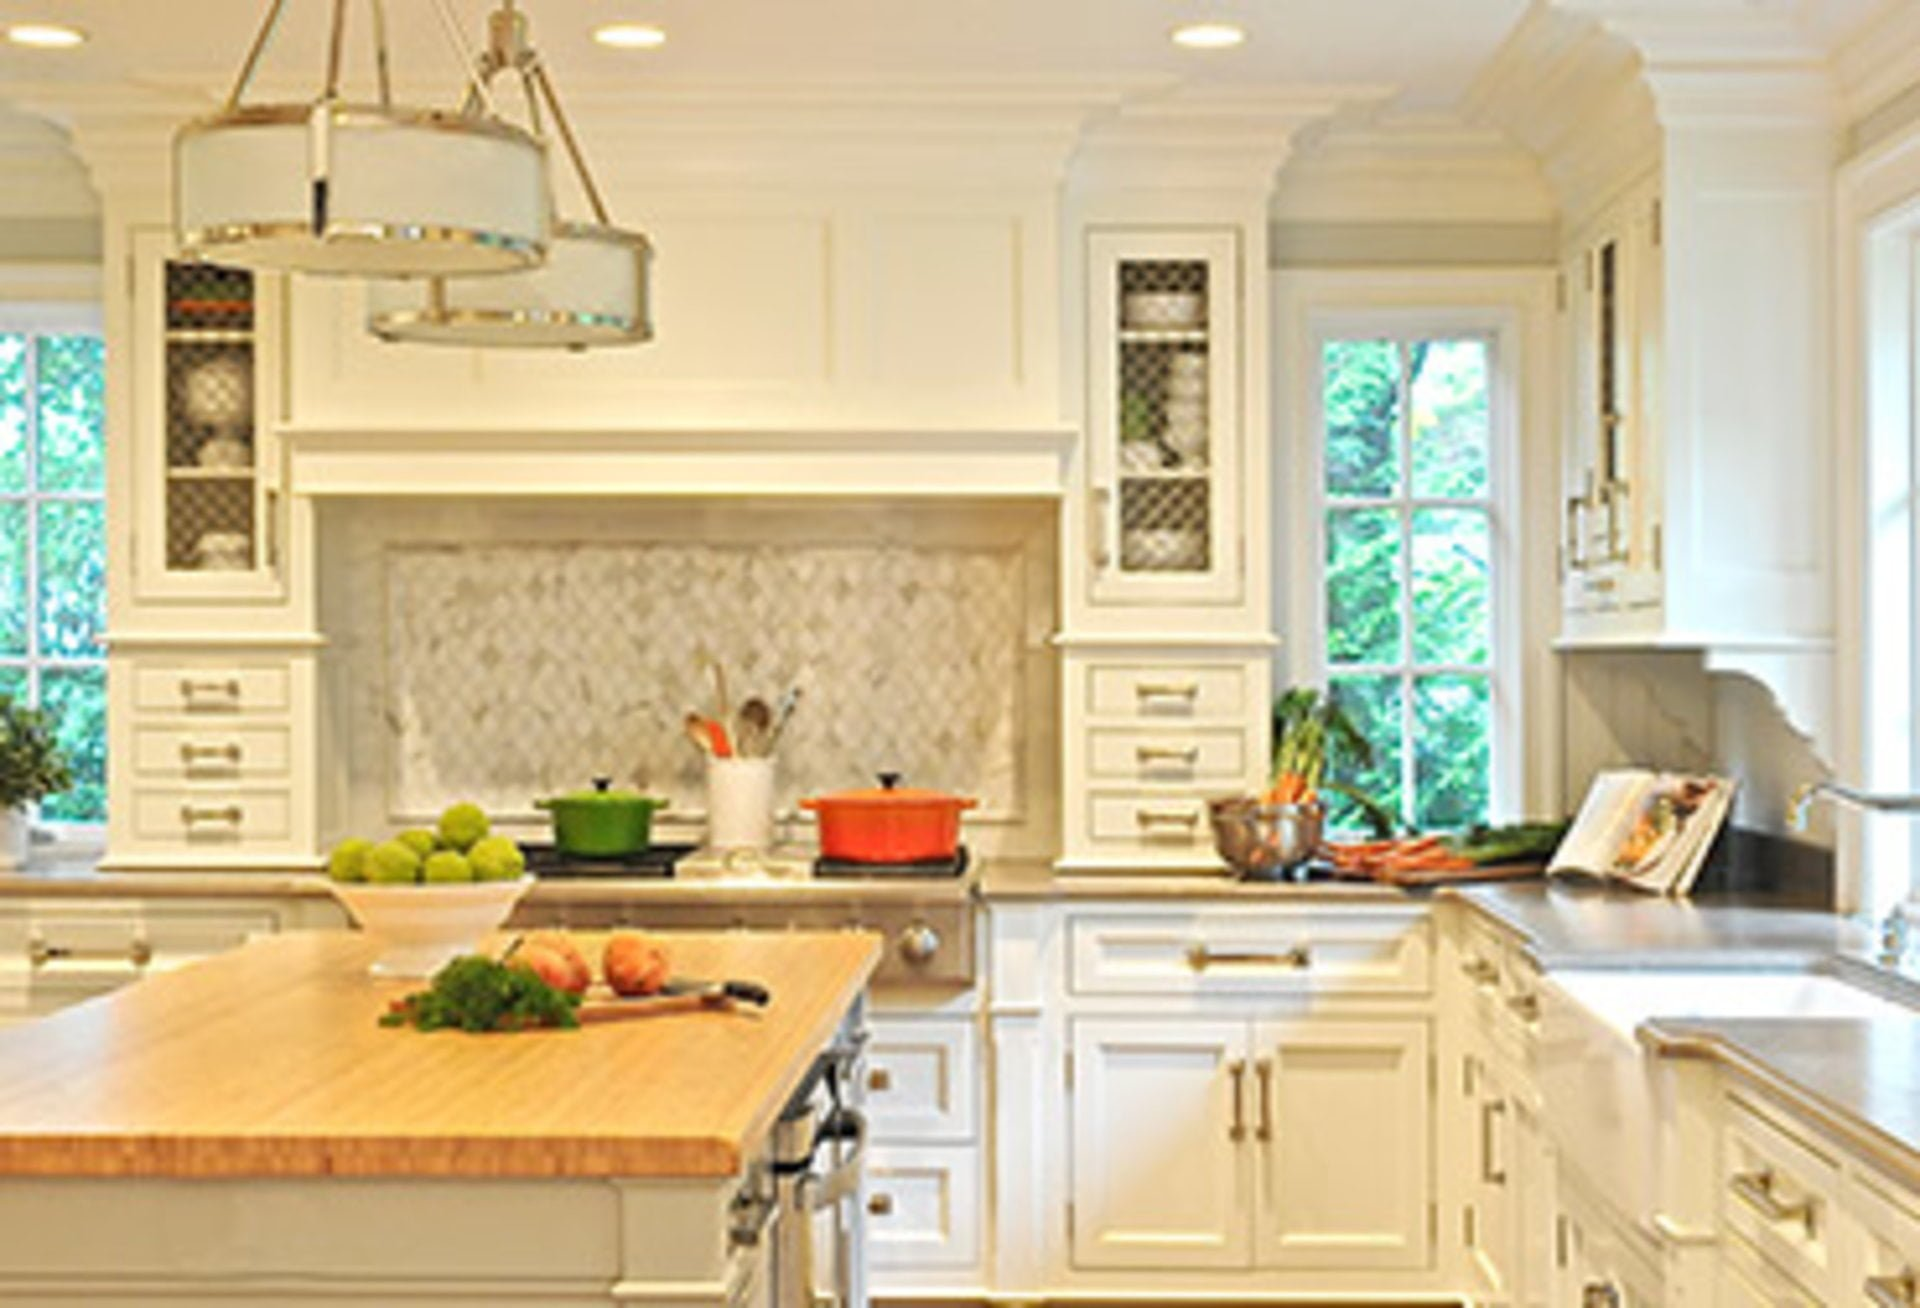 Contractor Custom Cabinetry and Millwork